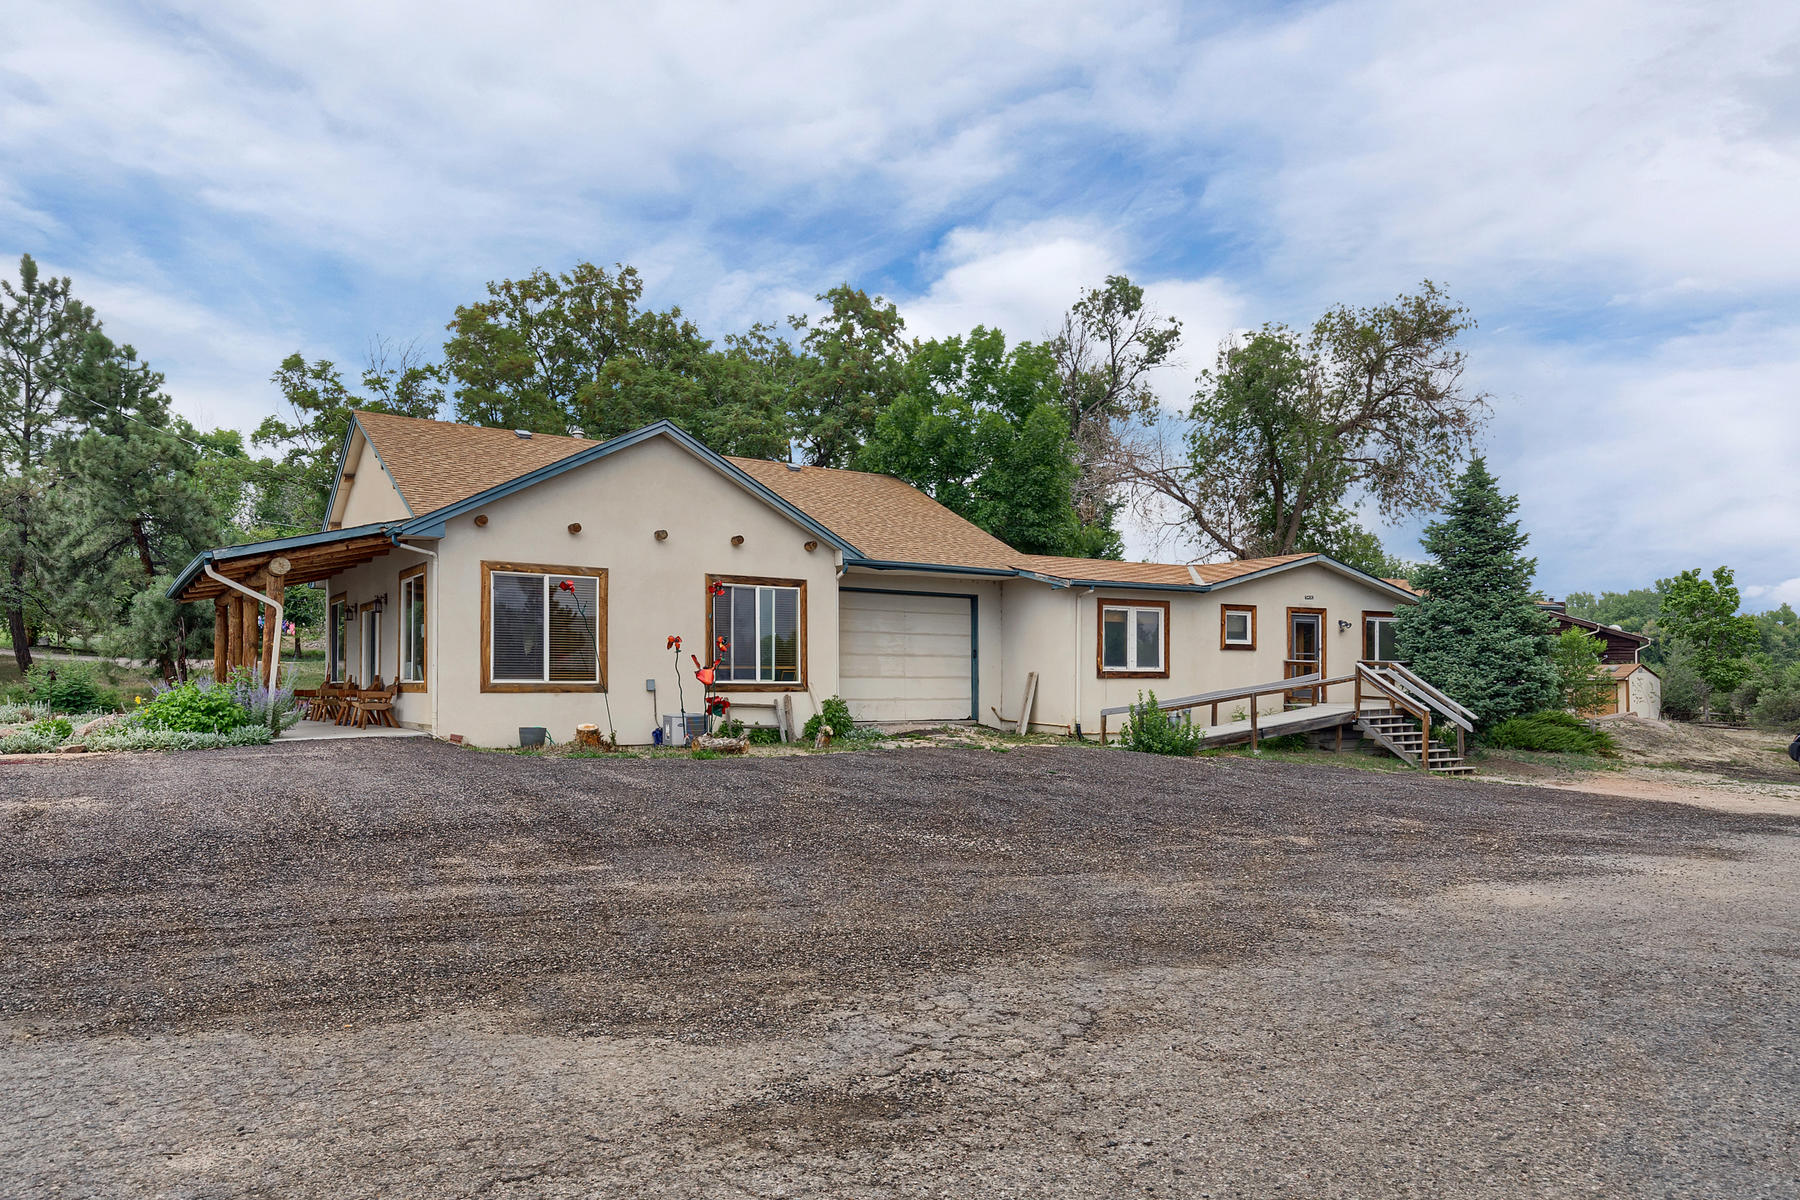 Single Family Home for Active at Rare opportunity to live & office in quiet, downtown Sedalia. 5406 N State Highway 67 Sedalia, Colorado 80135 United States